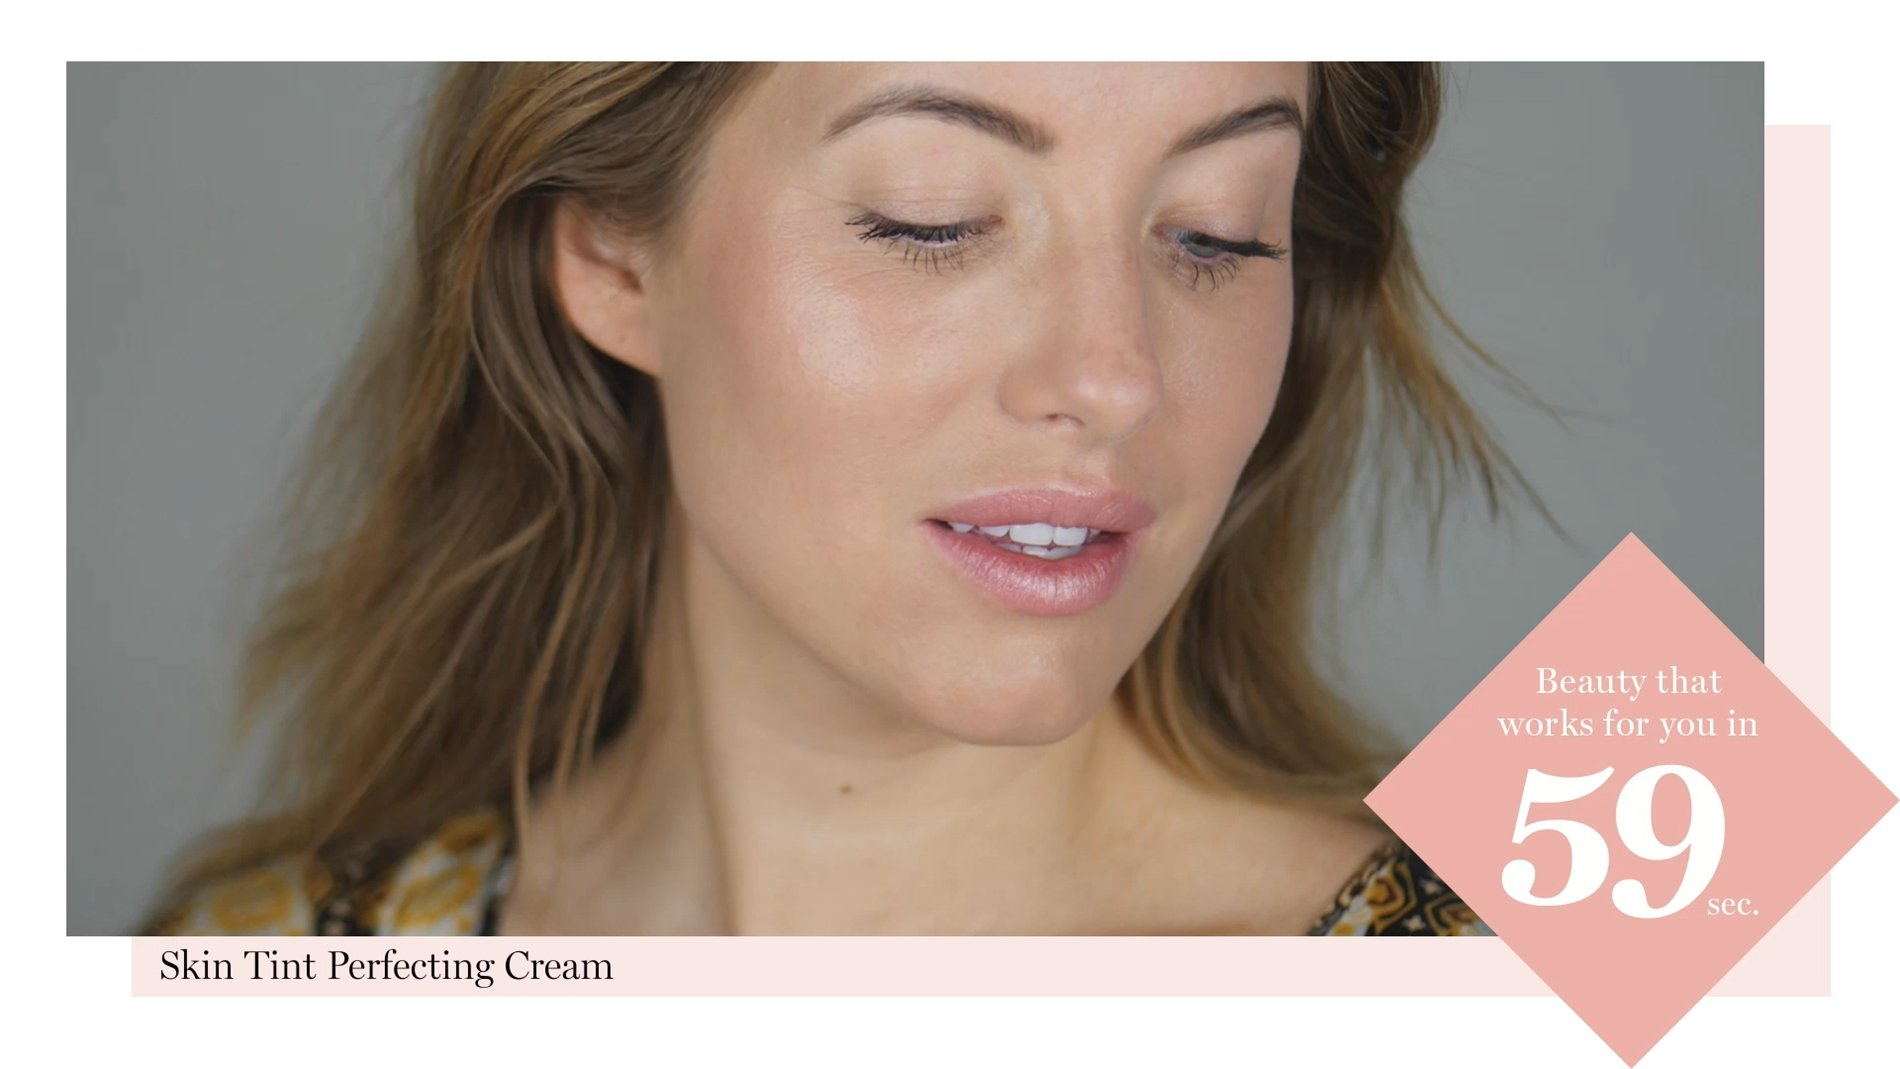 Skin Tint Perfecting Cream